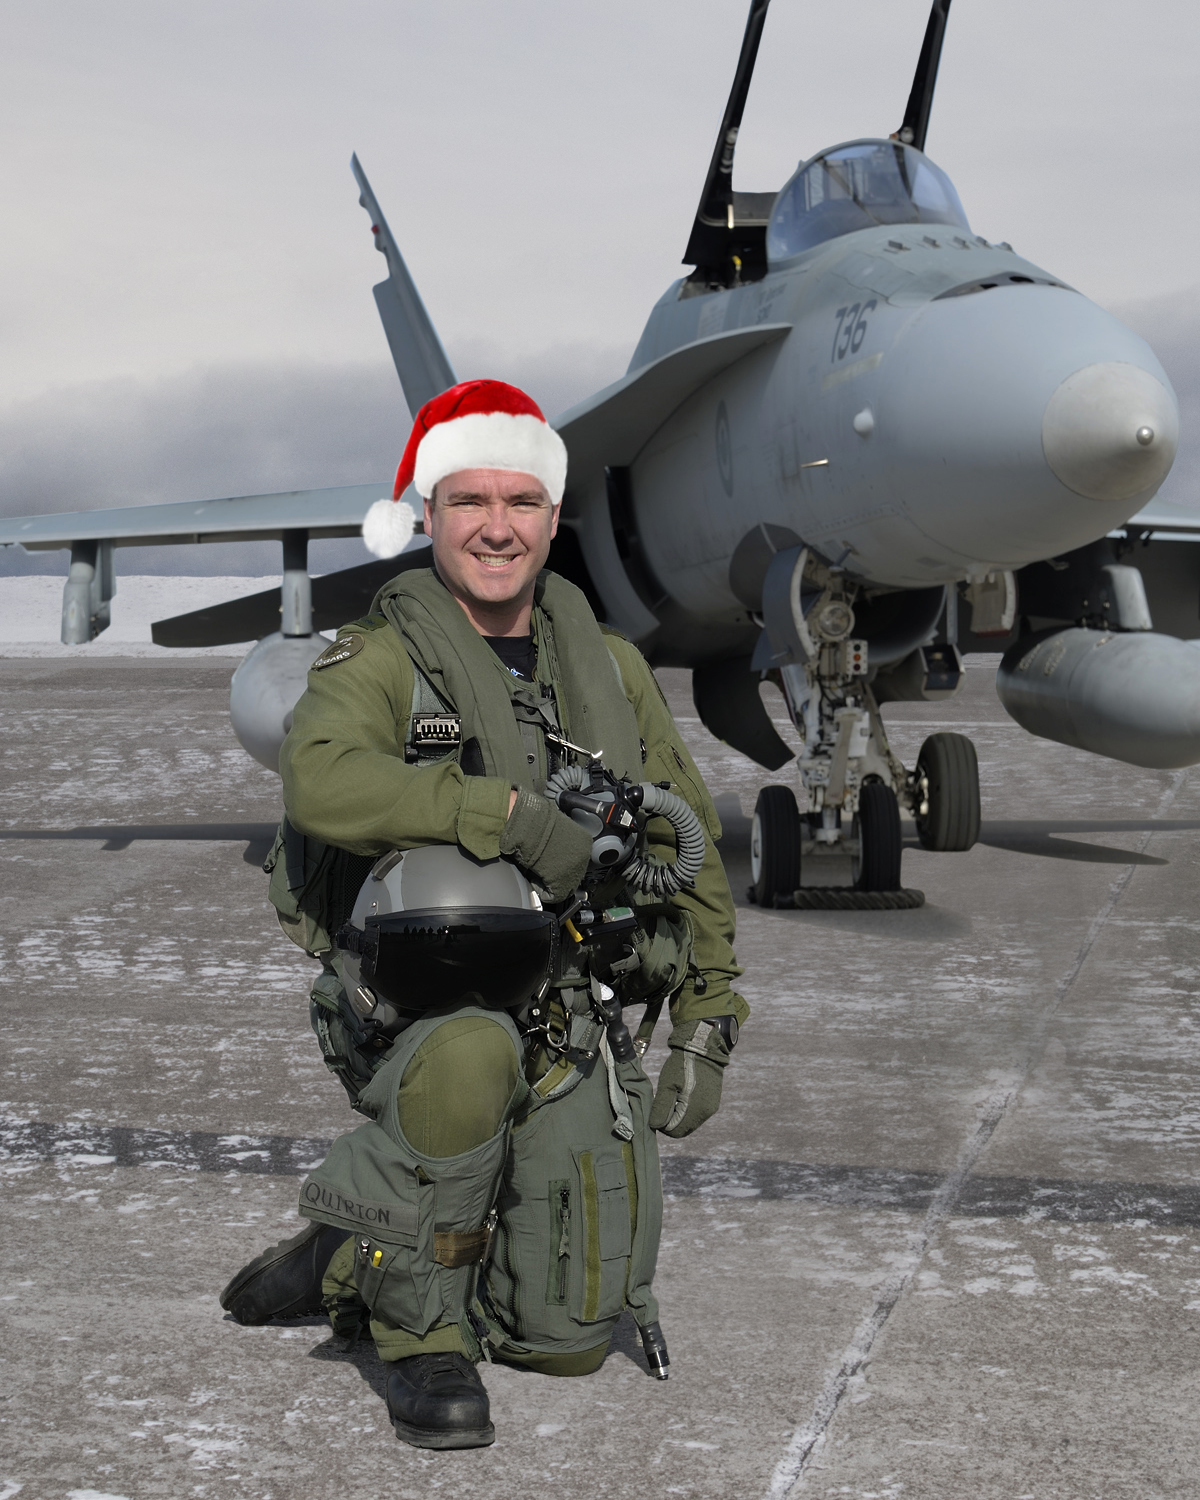 CF-188 Hornet pilot Captain Pierre-Claude Quirion of 433 Tactical Fighter Squadron at 3 Wing Bagotville, Quebec, is ready to escort Santa Claus through North American airspace on December 24, 2017. PHOTO: Corporal Vlassova Elena, CK2013-0253-04